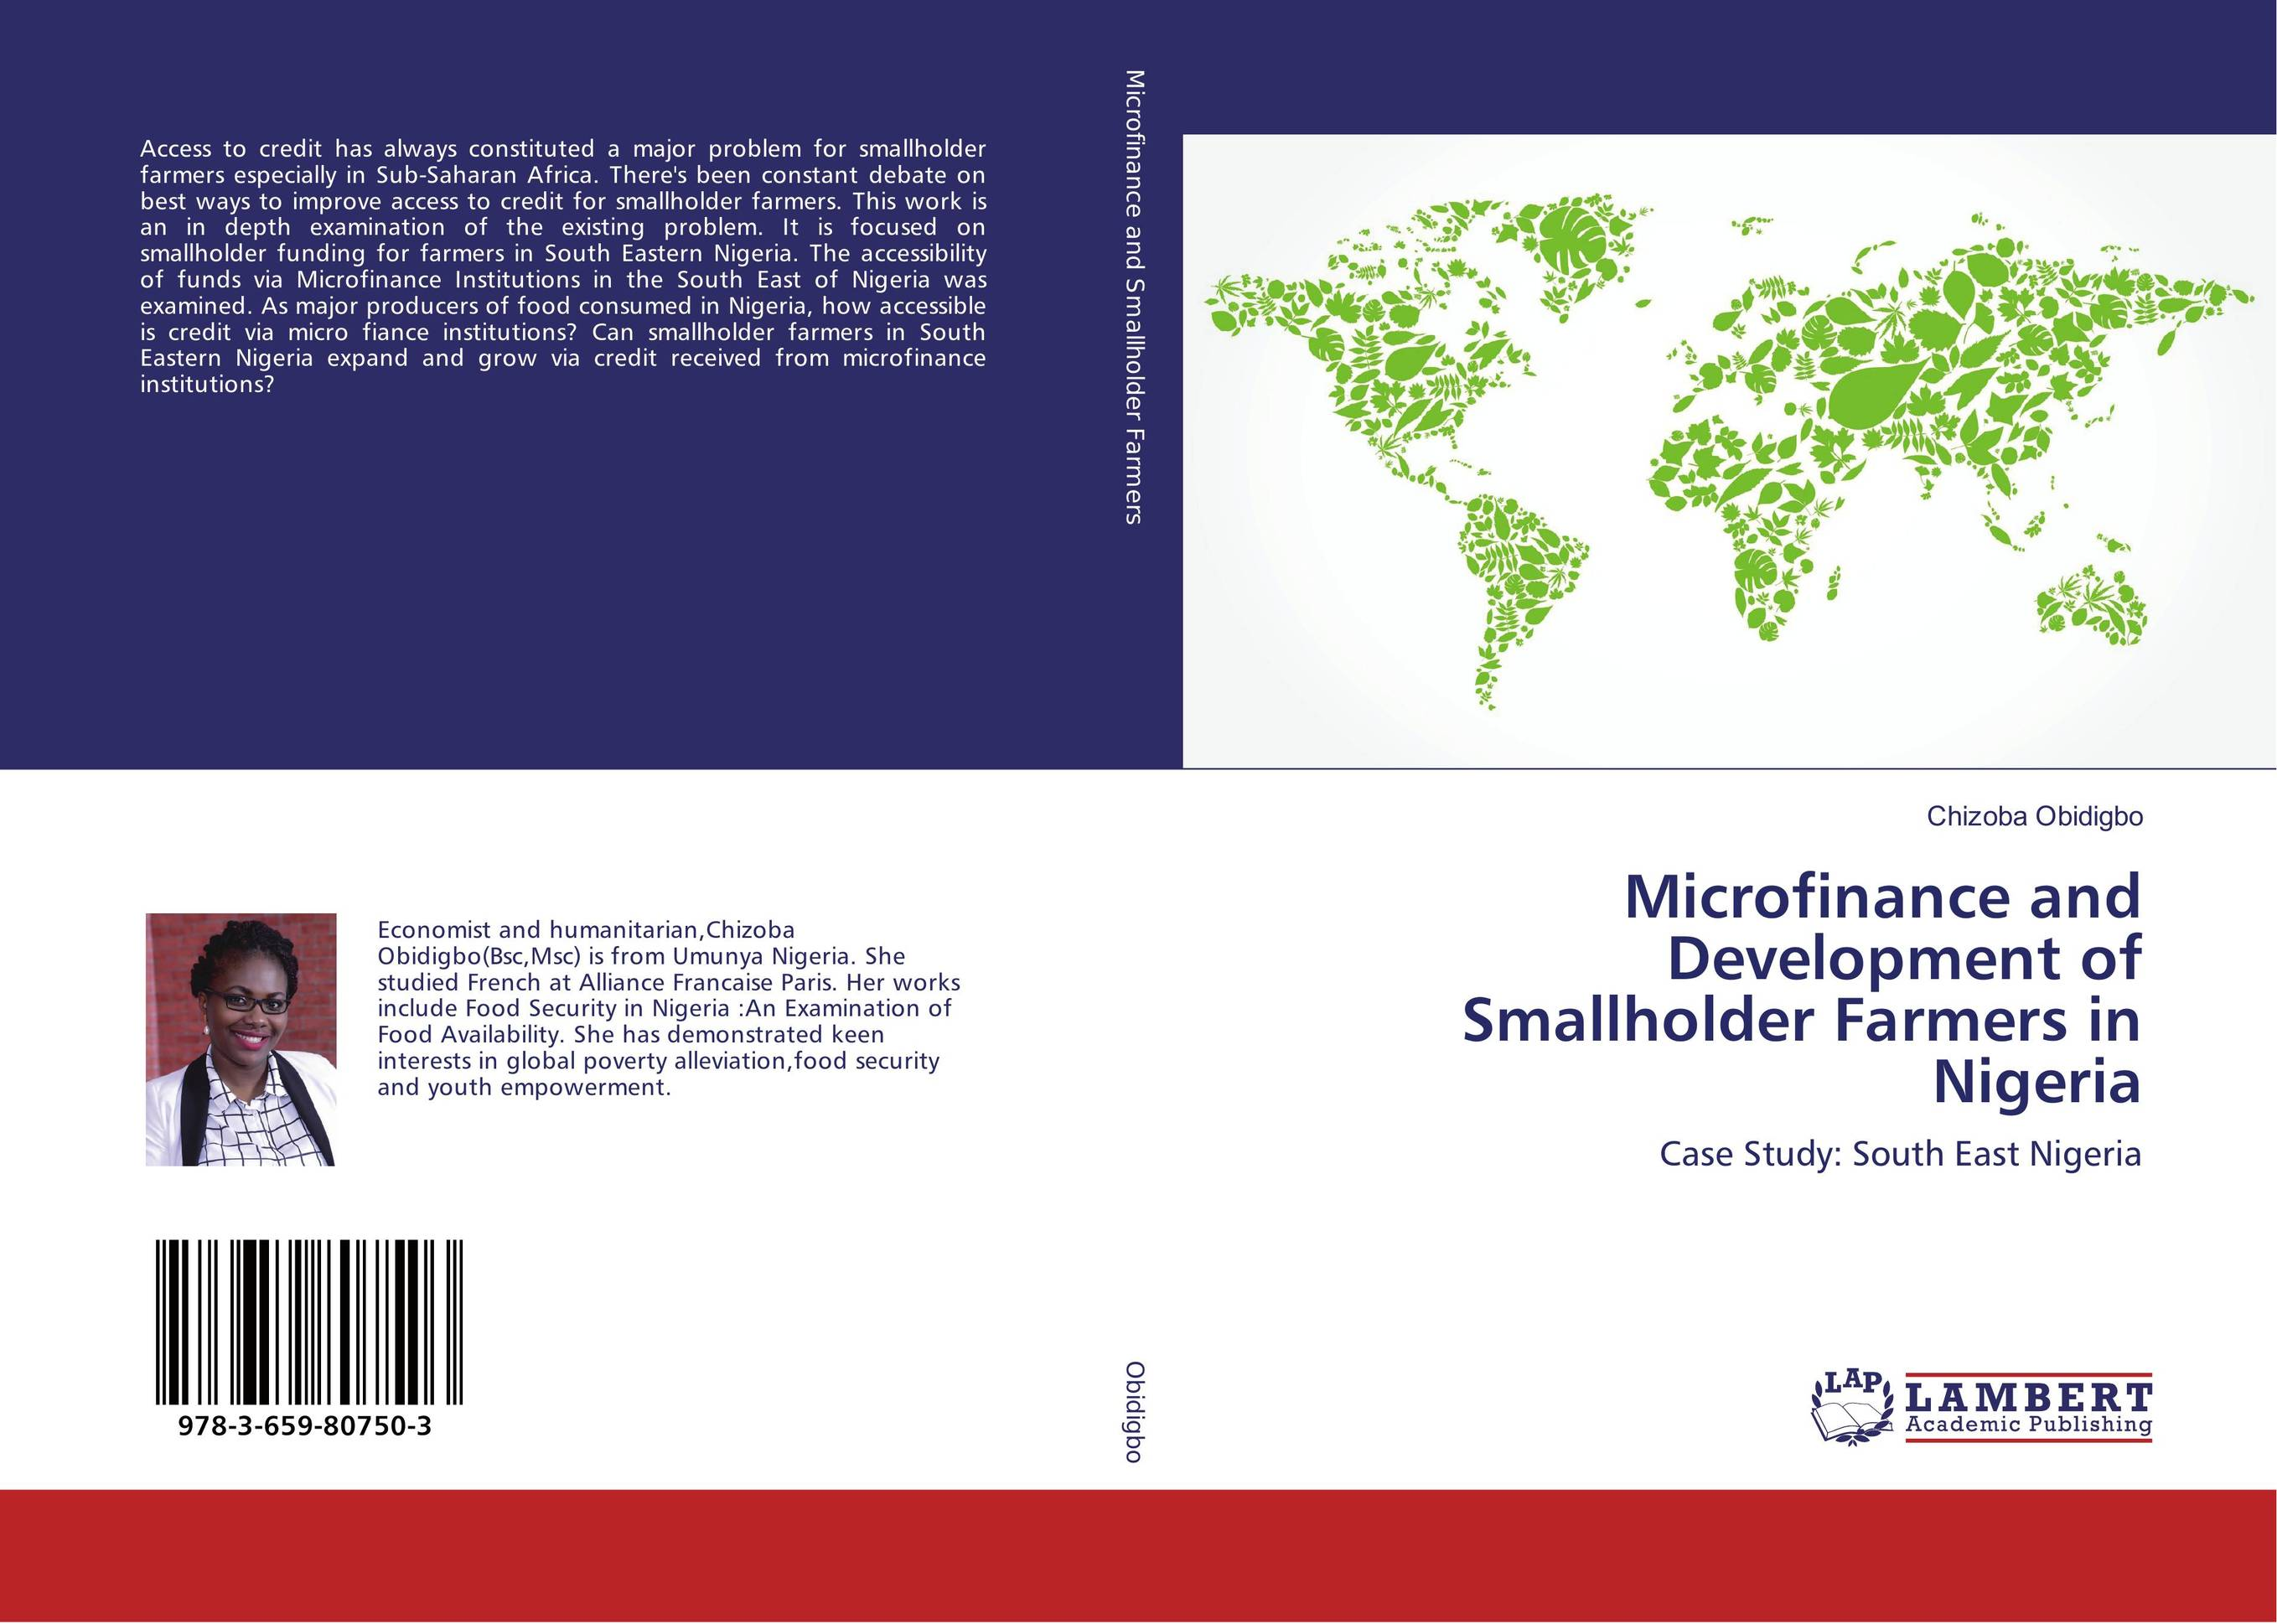 Microfinance and Development of Smallholder Farmers in Nigeria arcade ndoricimpa inflation output growth and their uncertainties in south africa empirical evidence from an asymmetric multivariate garch m model